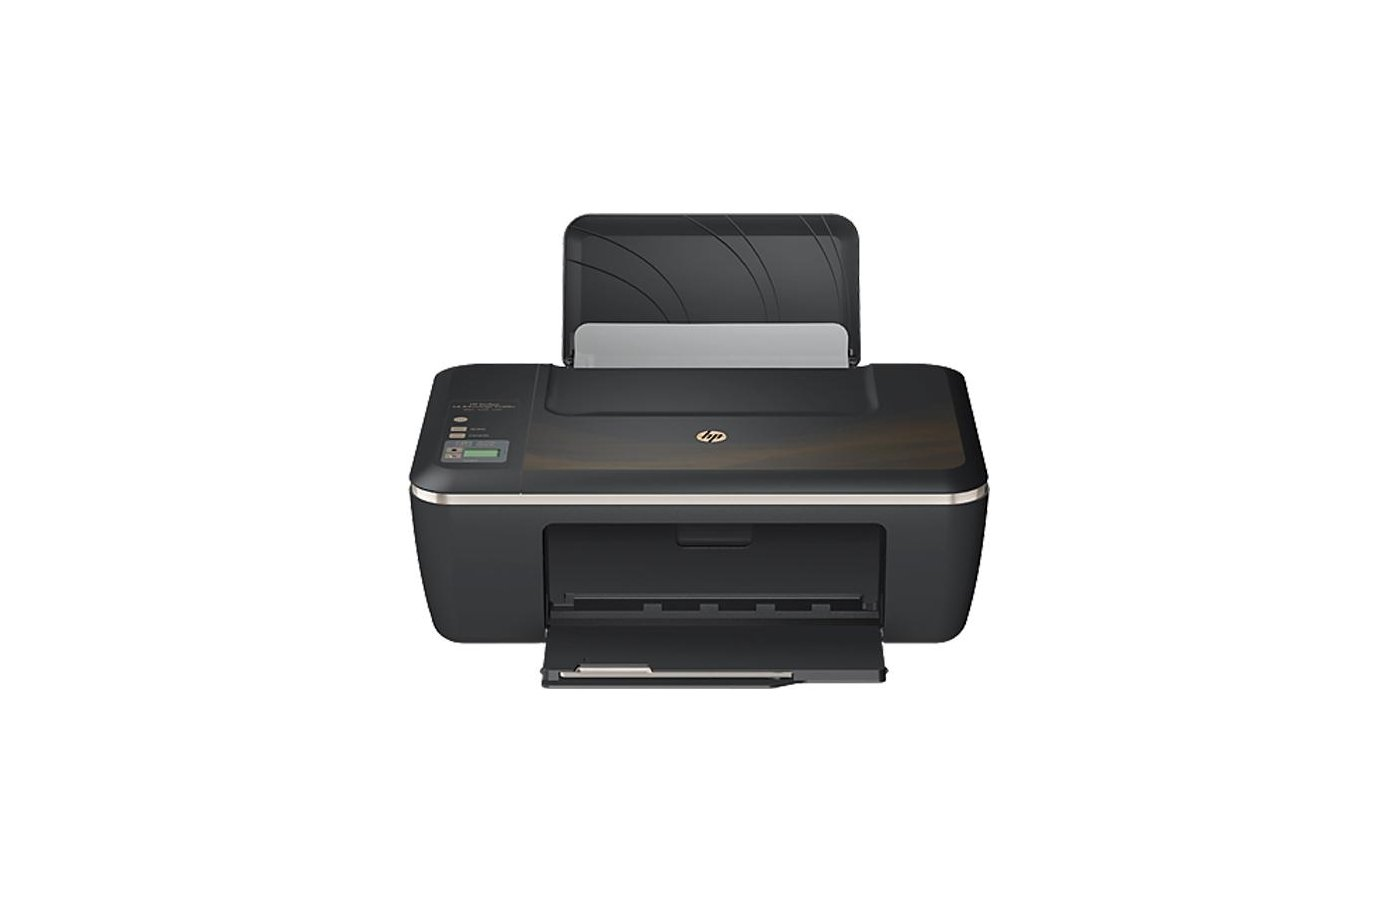 МФУ HP Deskjet Ink Advantage 2520hc AiO